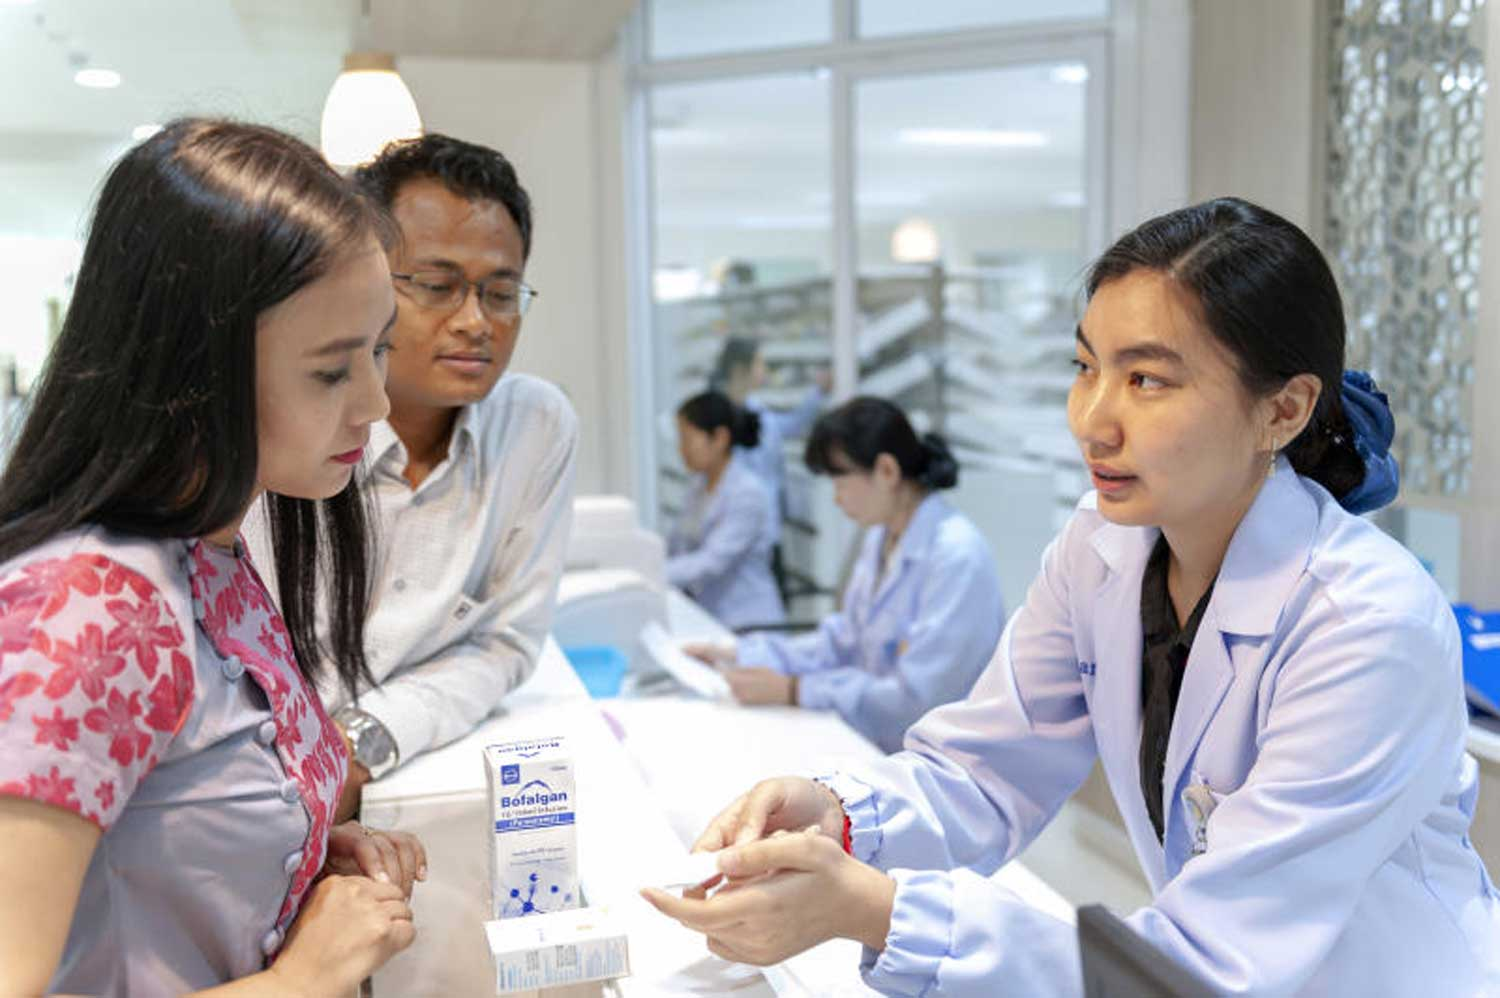 A pharmacist dispenses medicine to a patient at a private hospital. Medical supplies and service charges at private hospitals are now on the state price control list. (File photo)